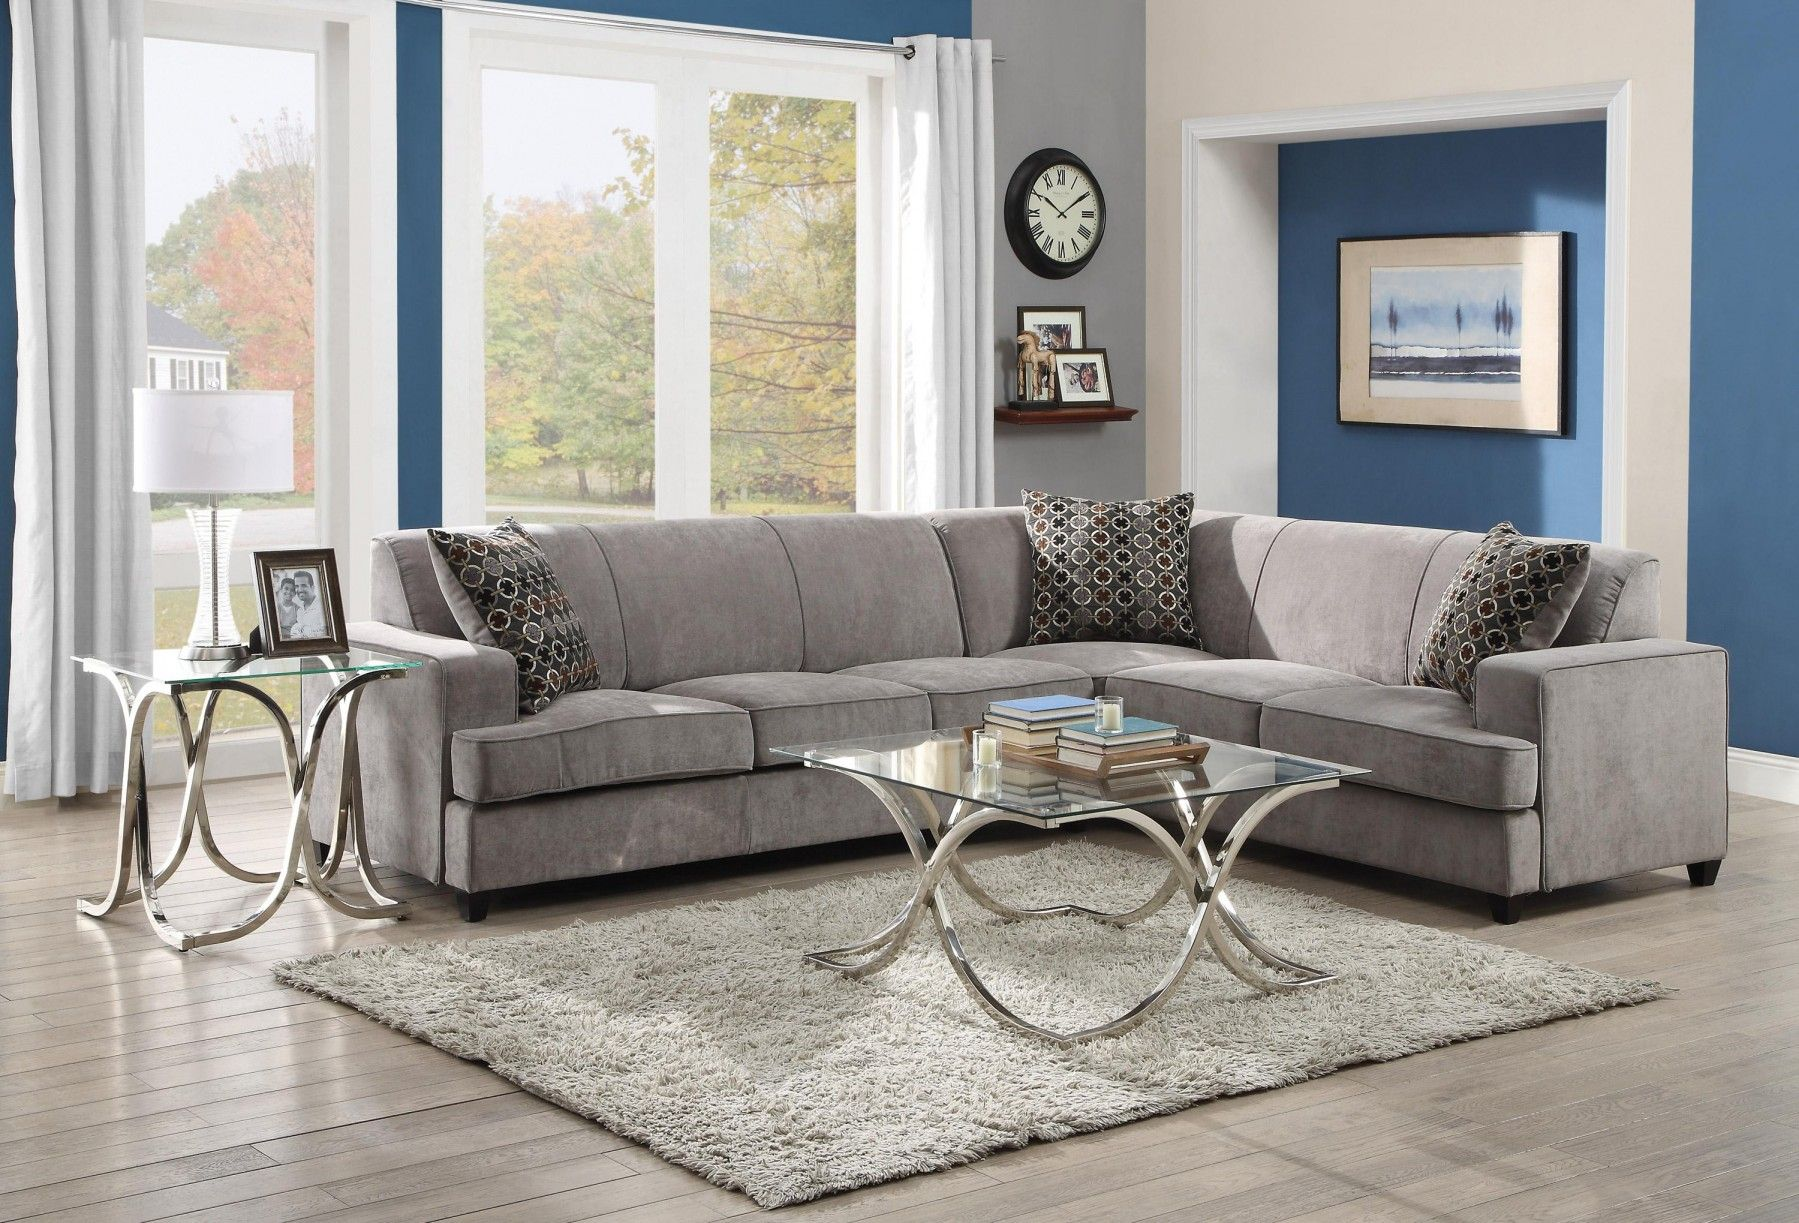 bisita style sectional of leather cheap guam design minimalist the grey couch image ikea